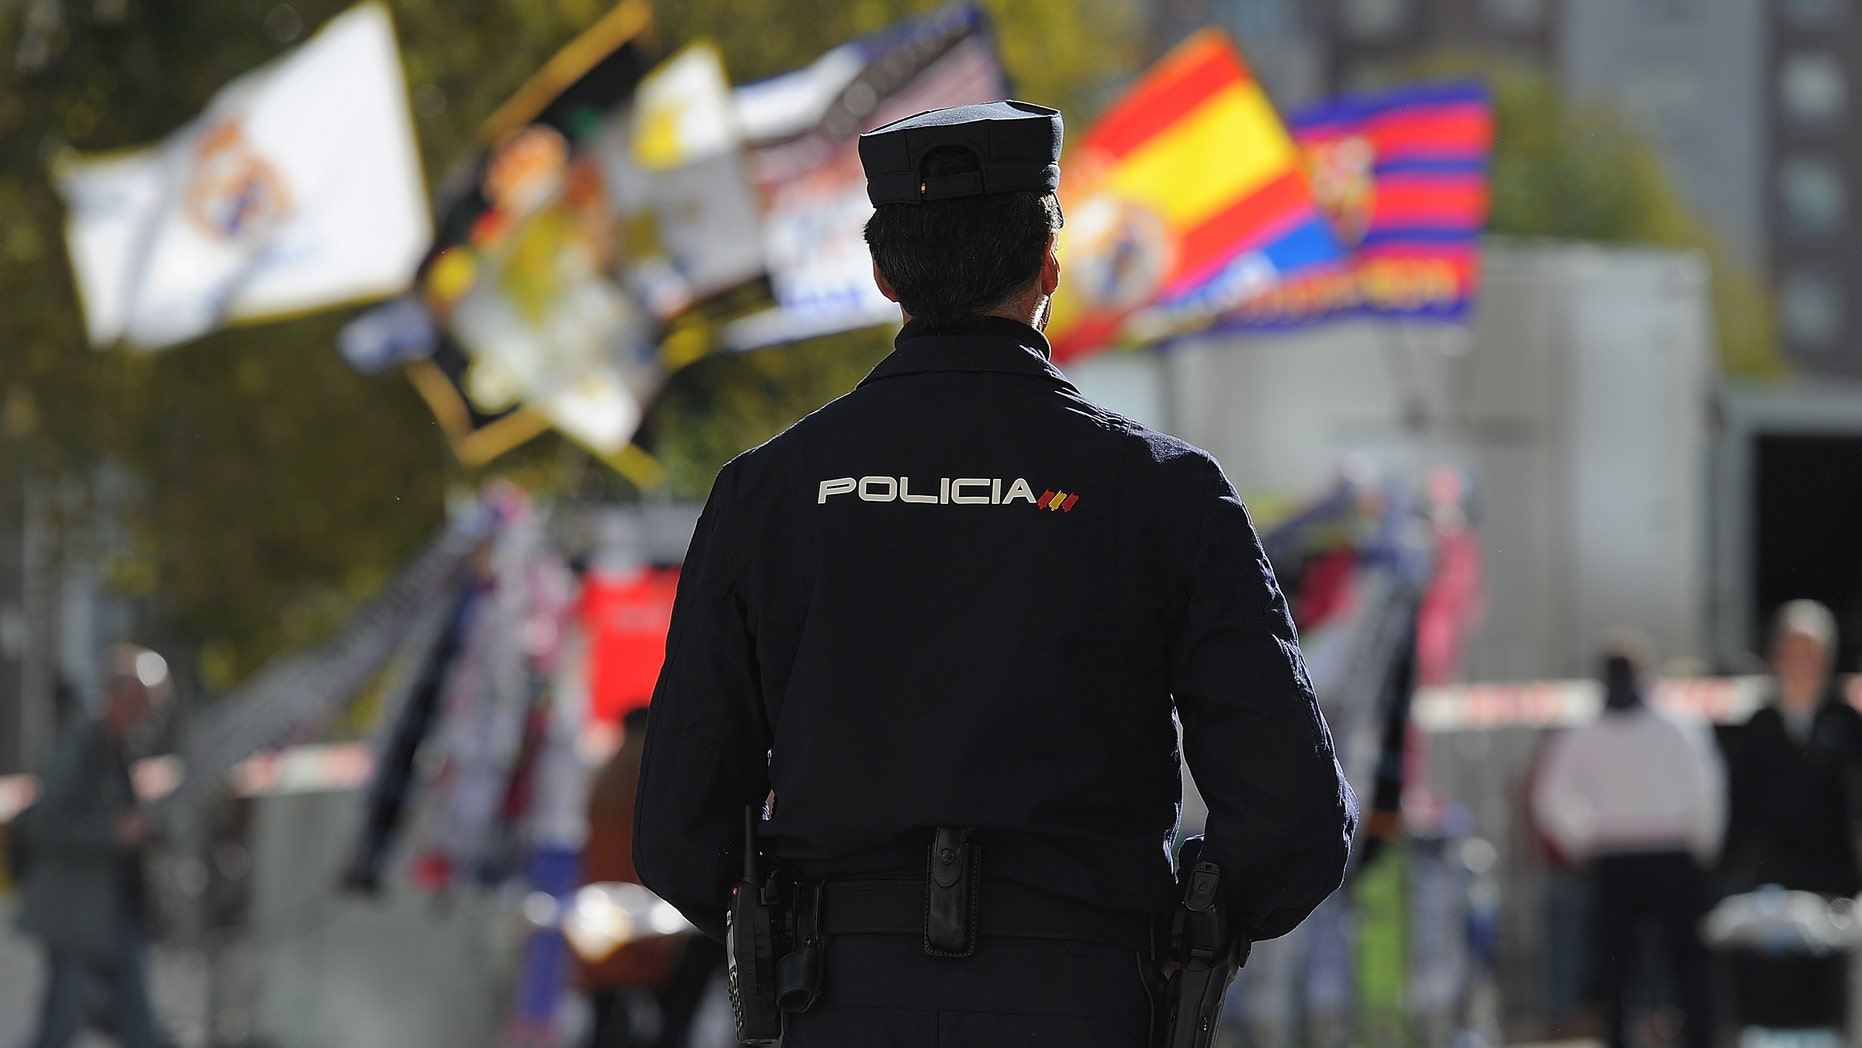 MADRID, SPAIN - NOVEMBER 21:  A policeman stands guard outside the Santiago Bernabeu stadium during tight security ahead of the La Liga match between Real Madrid and Barcelona at Estadio Santiago Bernabeu on November 21, 2015 in Madrid, Spain.  (Photo by Denis Doyle/Getty Images)